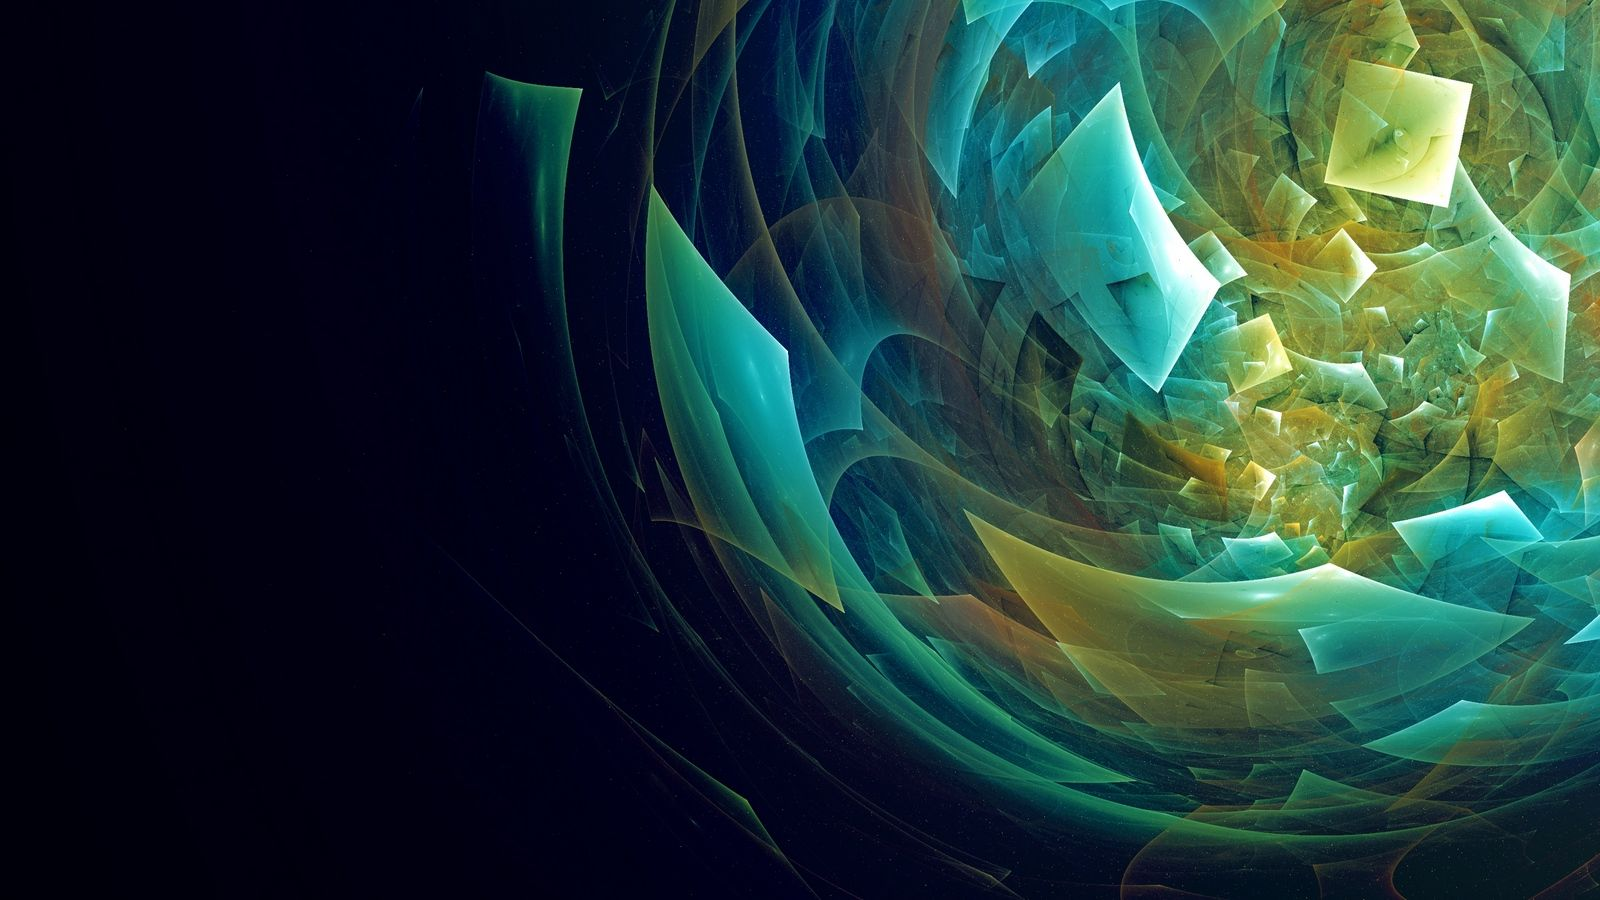 Wallpaper Abstraction